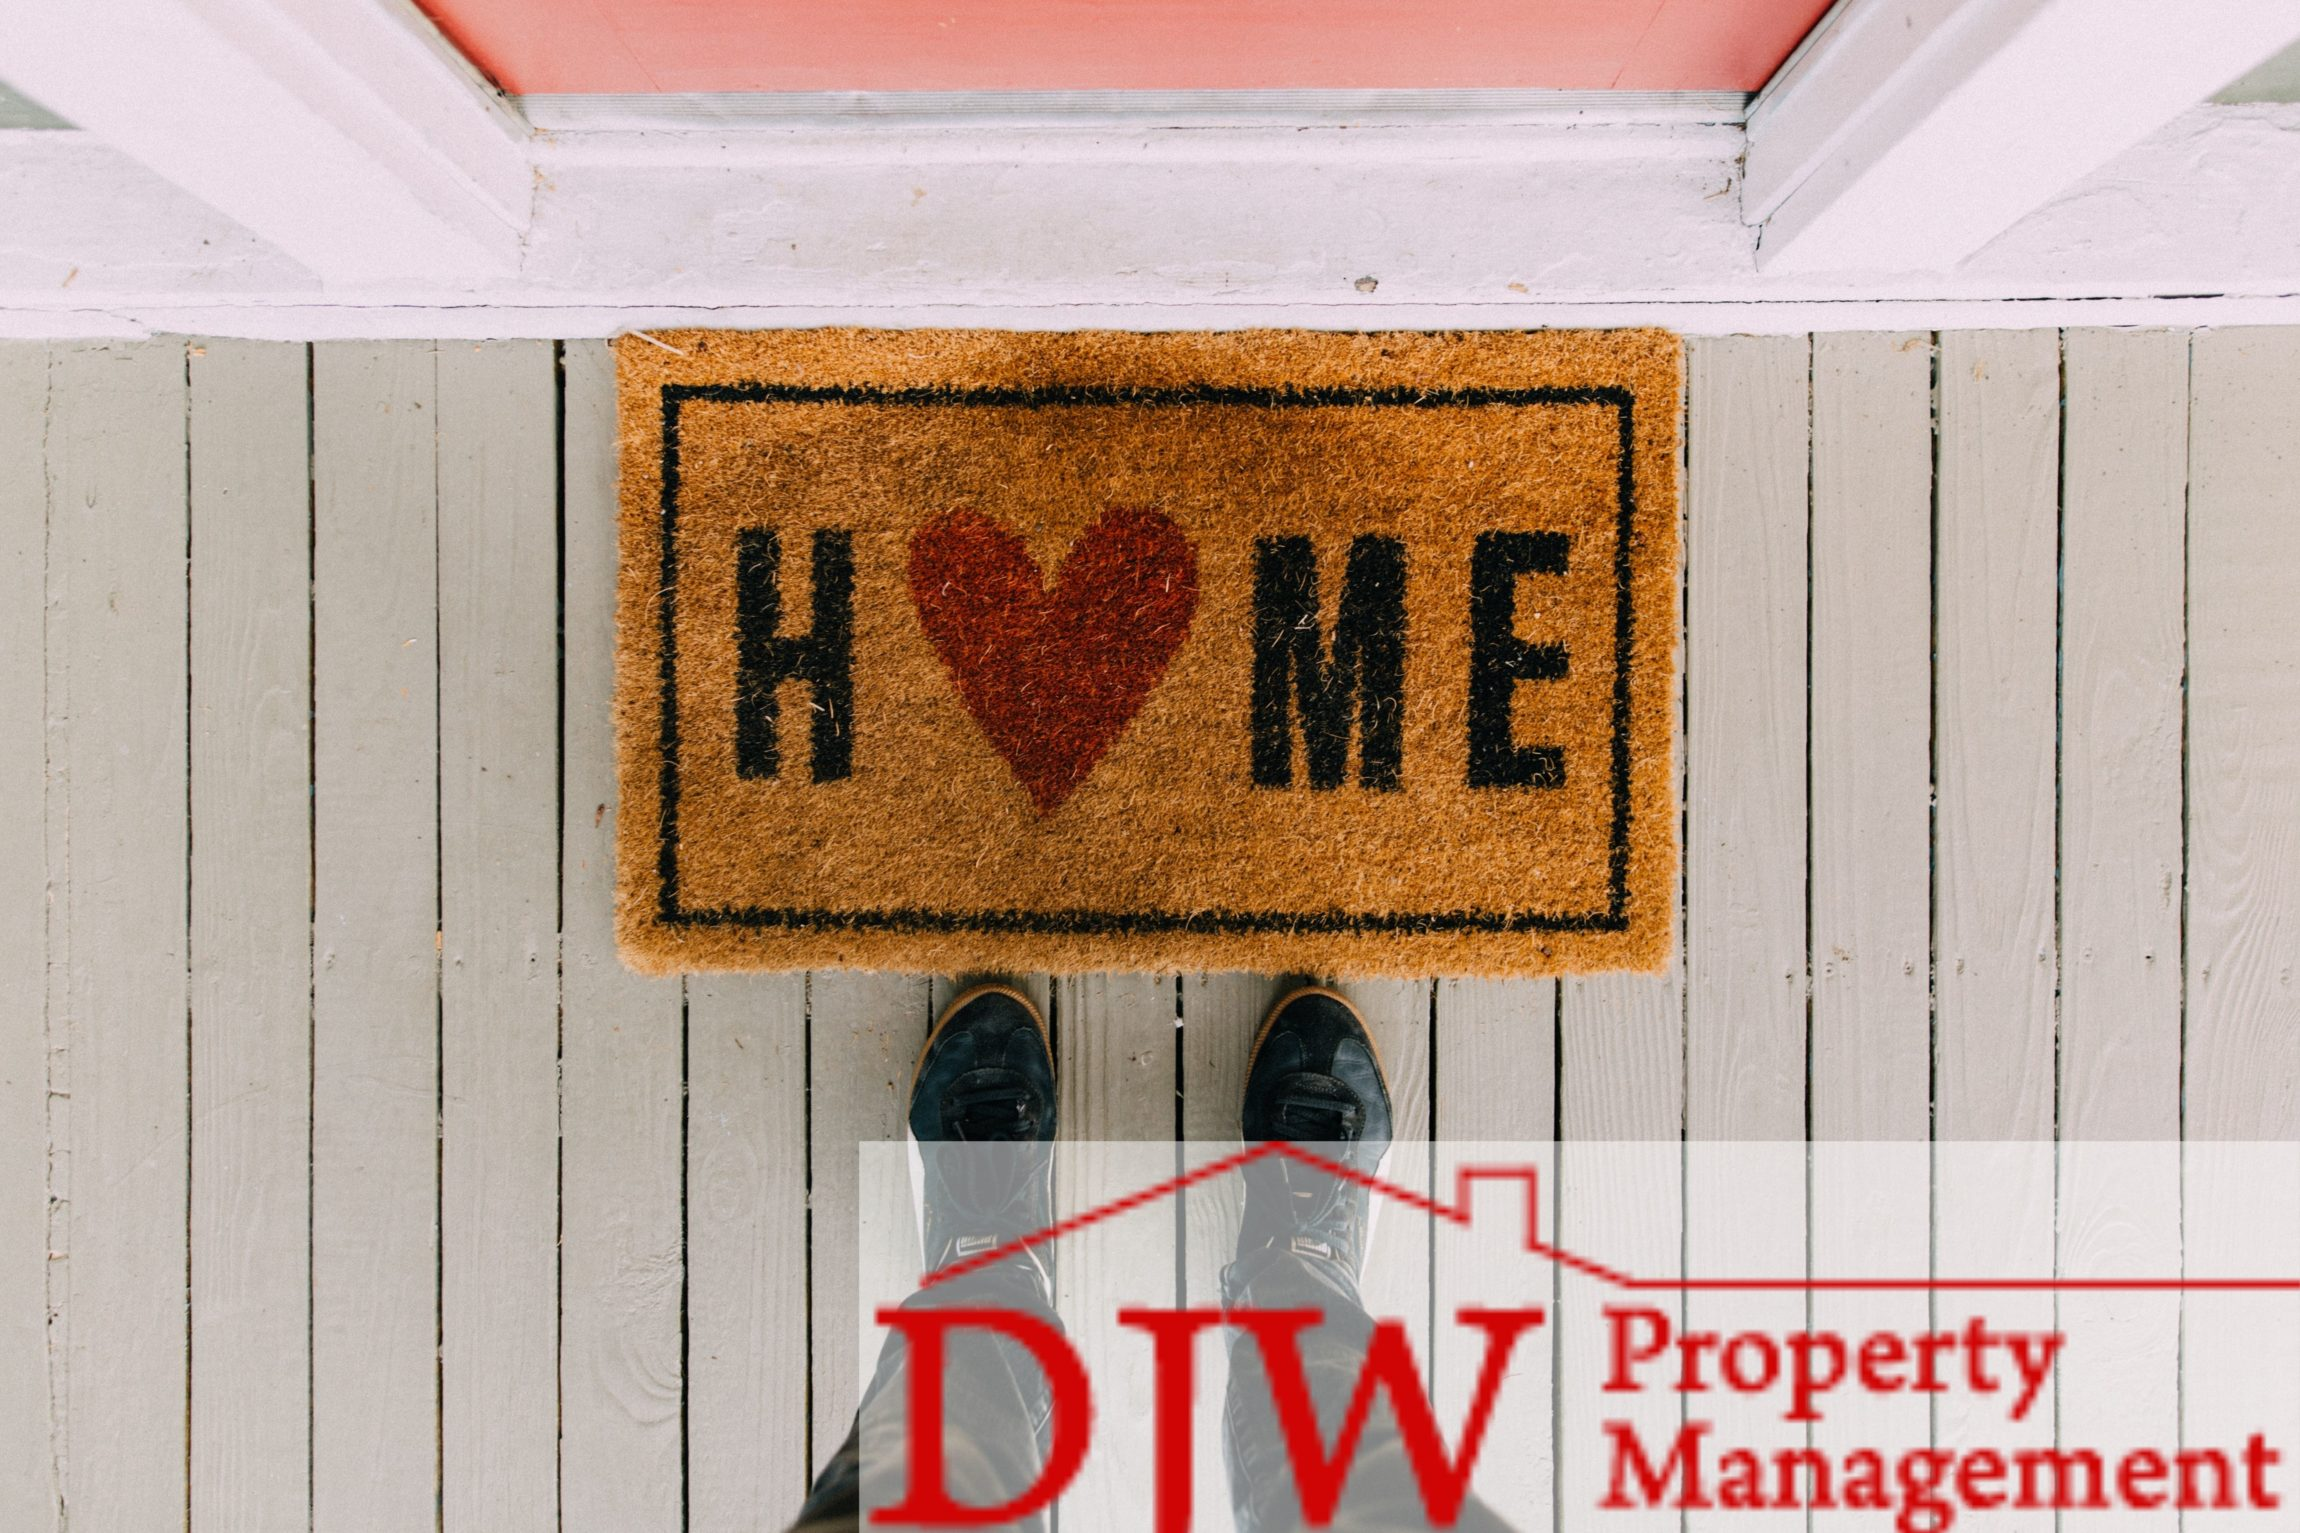 Doormat that says 'home' with a red heart